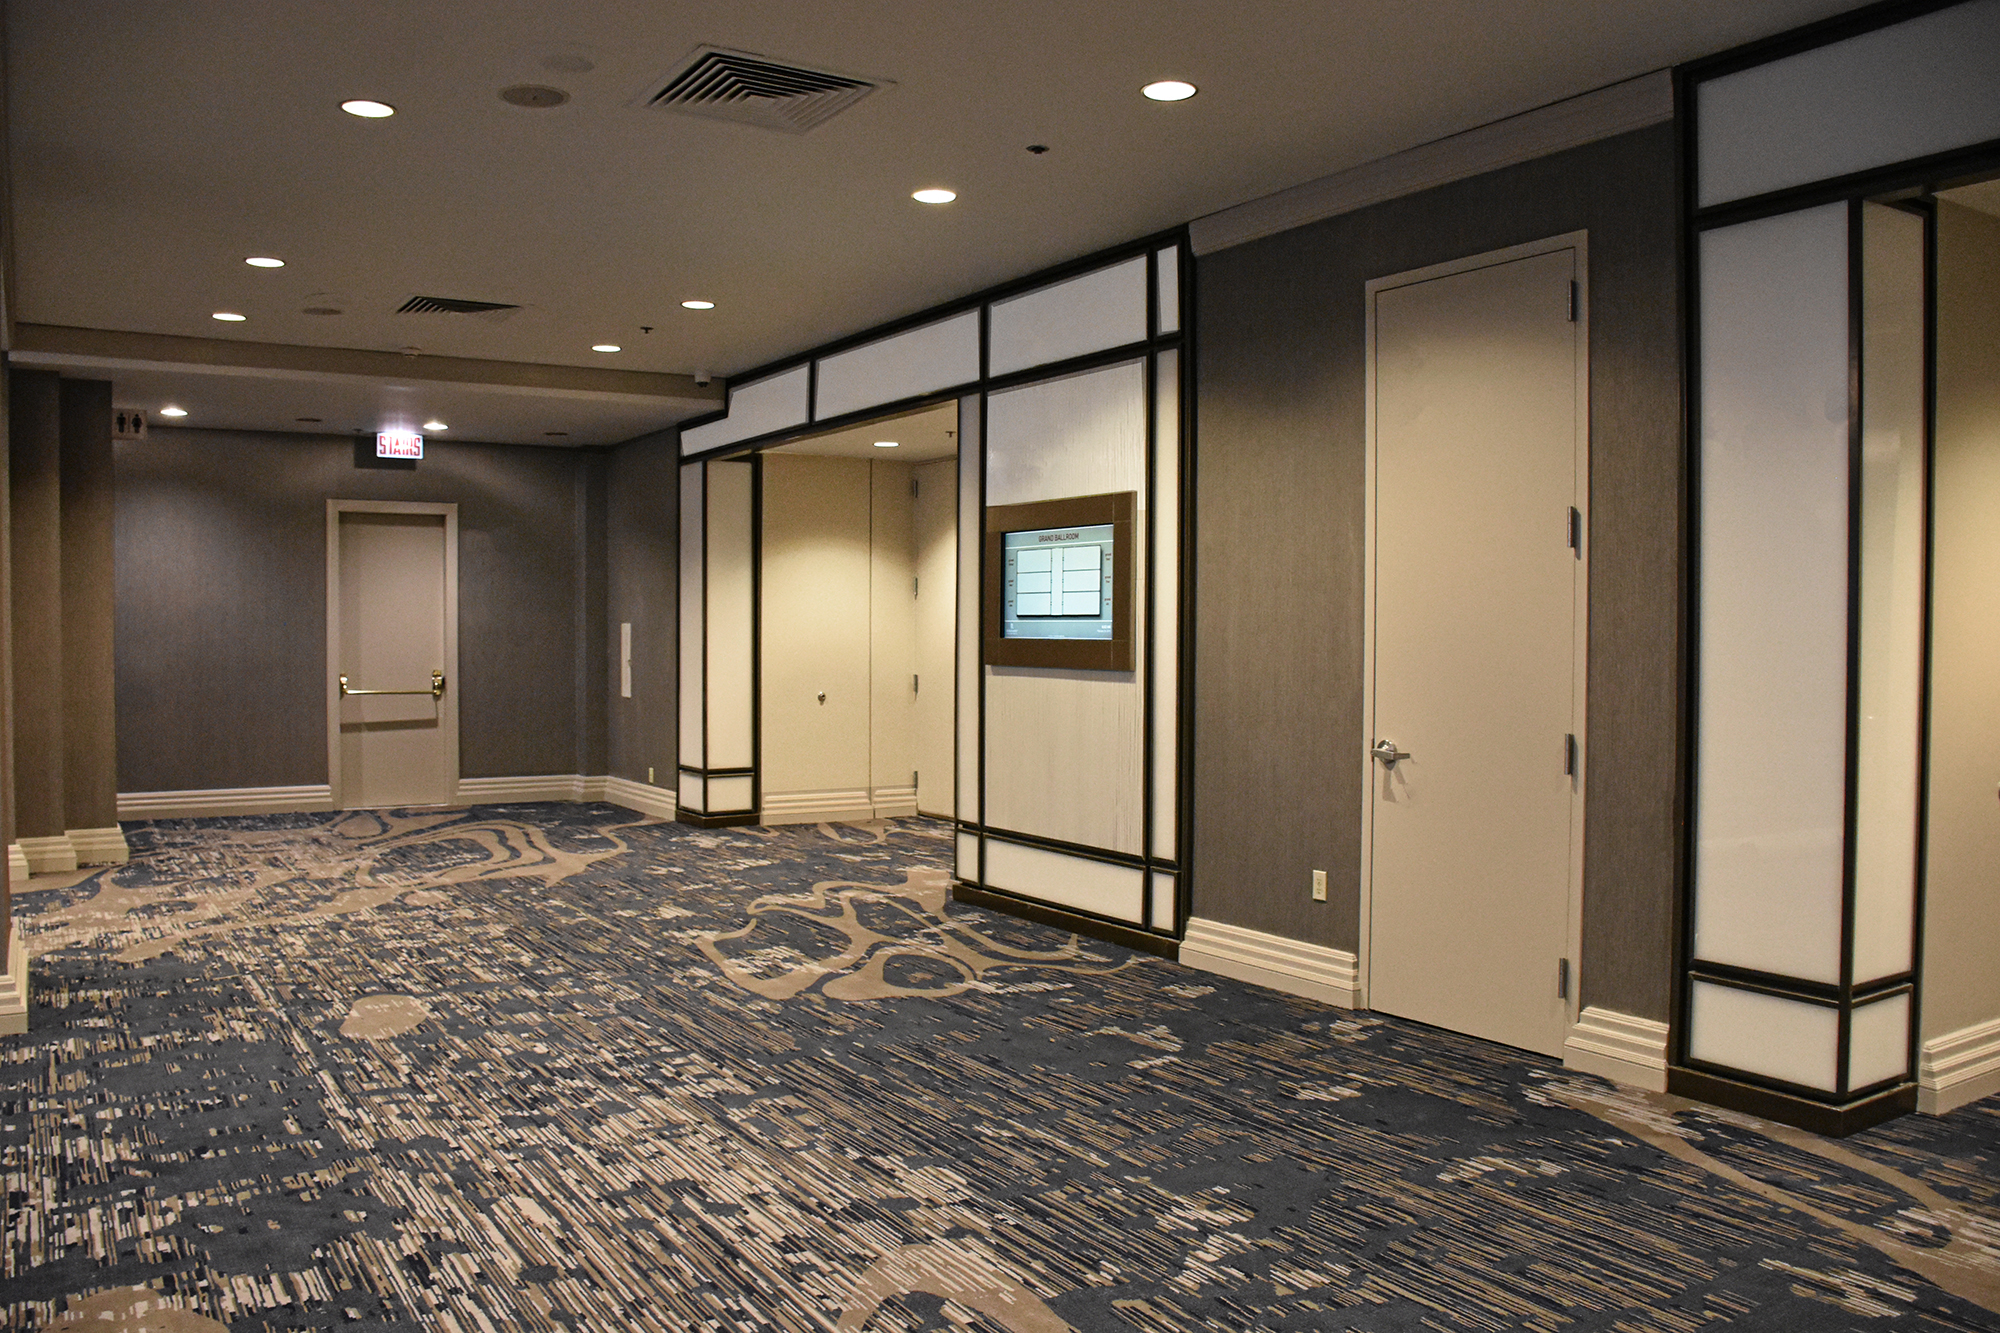 Prefunction Doors to Ballroom